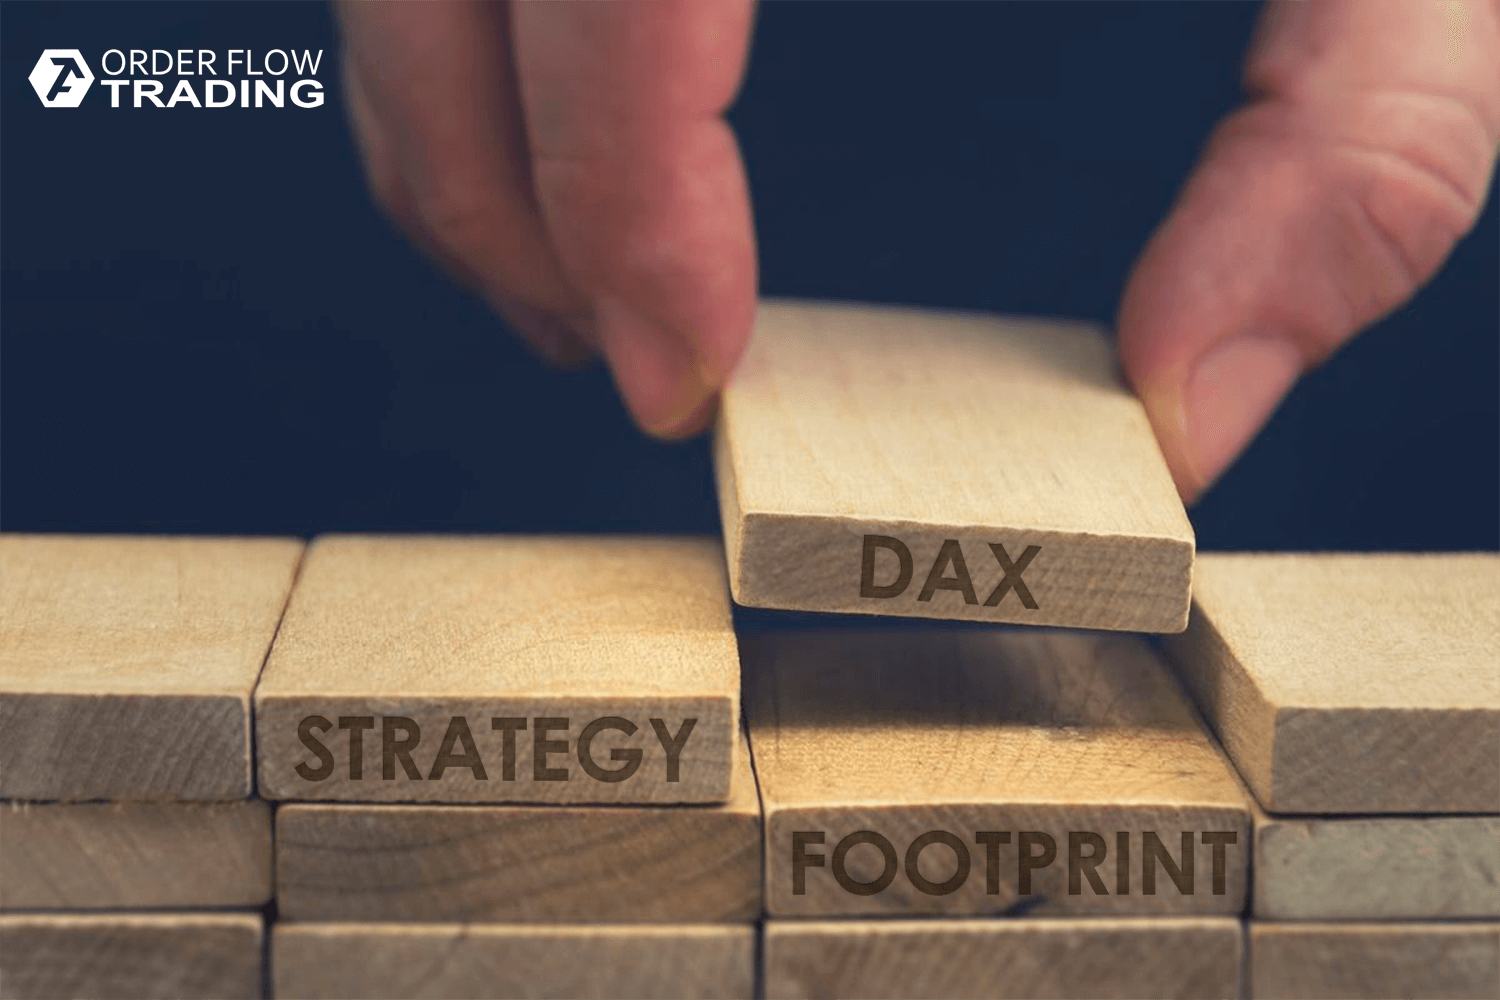 Strategy of using the footprint through the example of dax